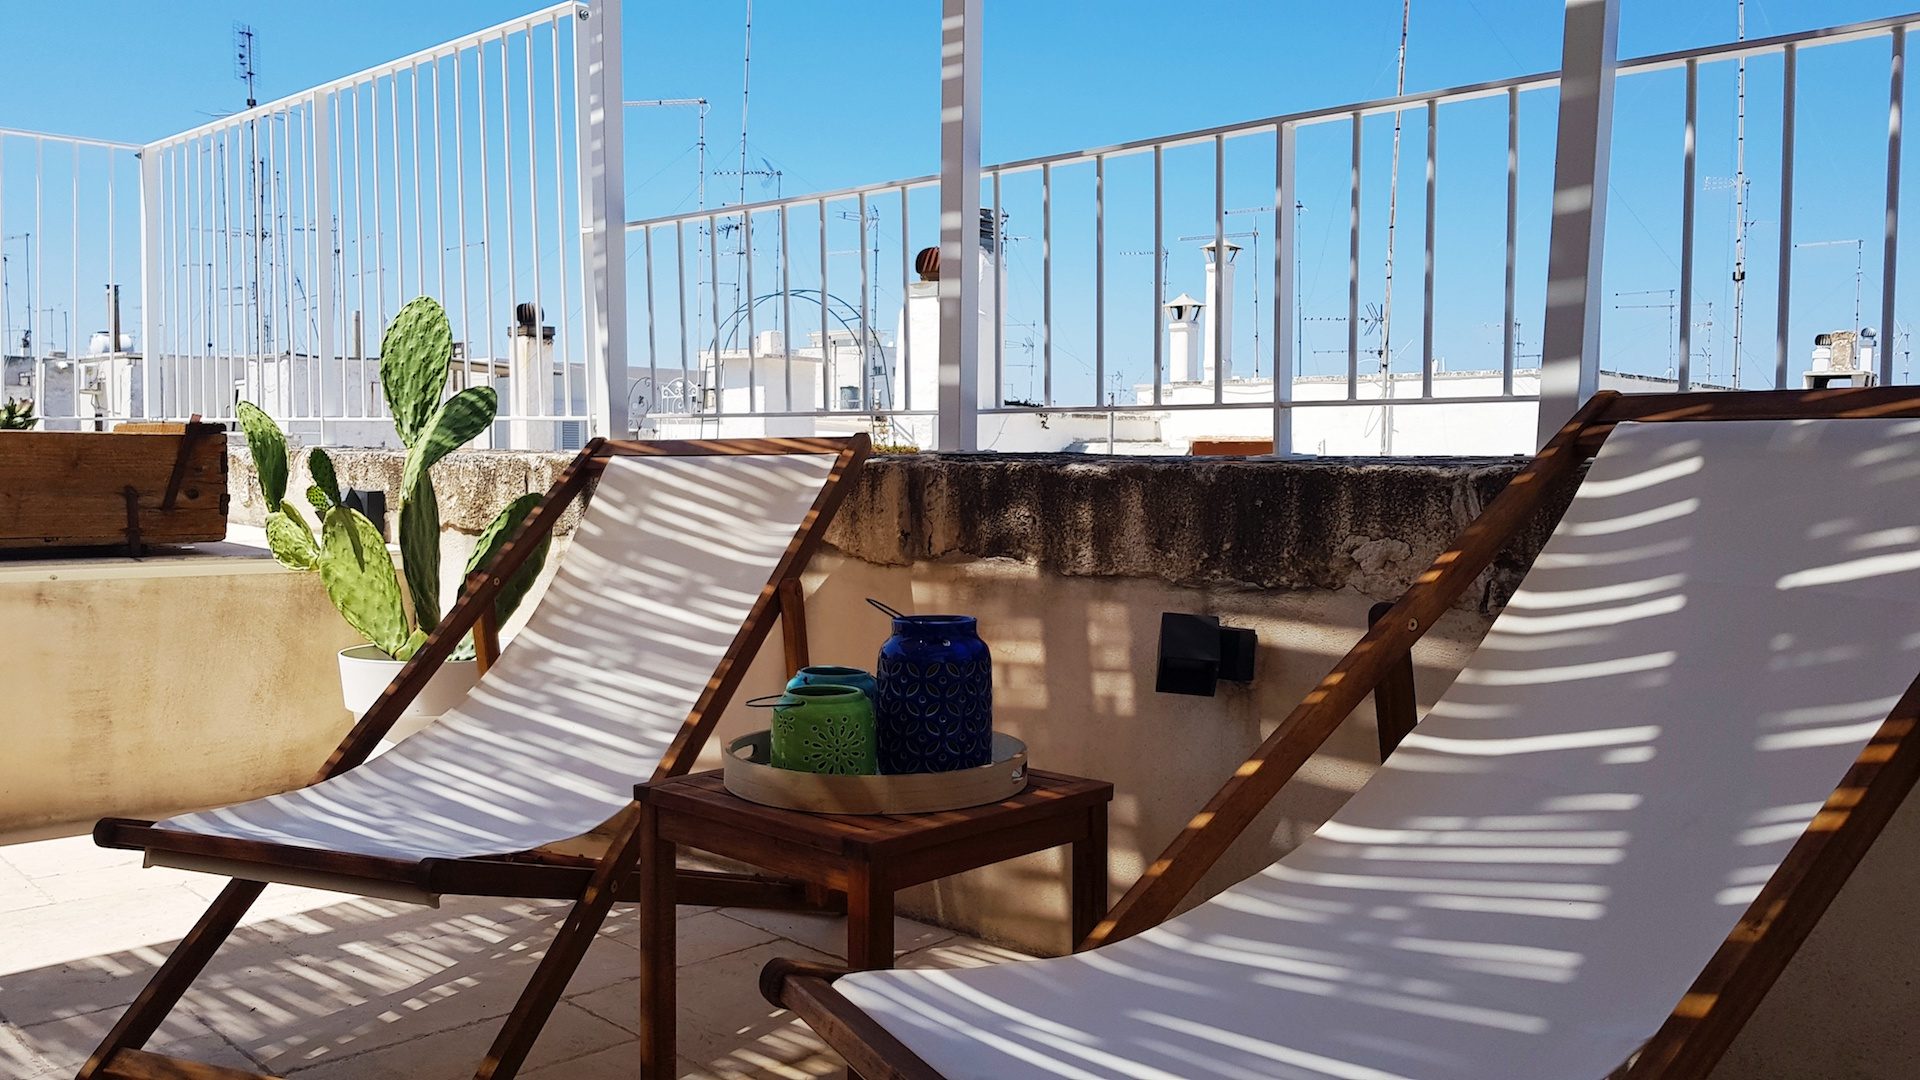 Shaded lower upper terrace with lounge chairs at Casa Emma holiday rental home in Ostuni